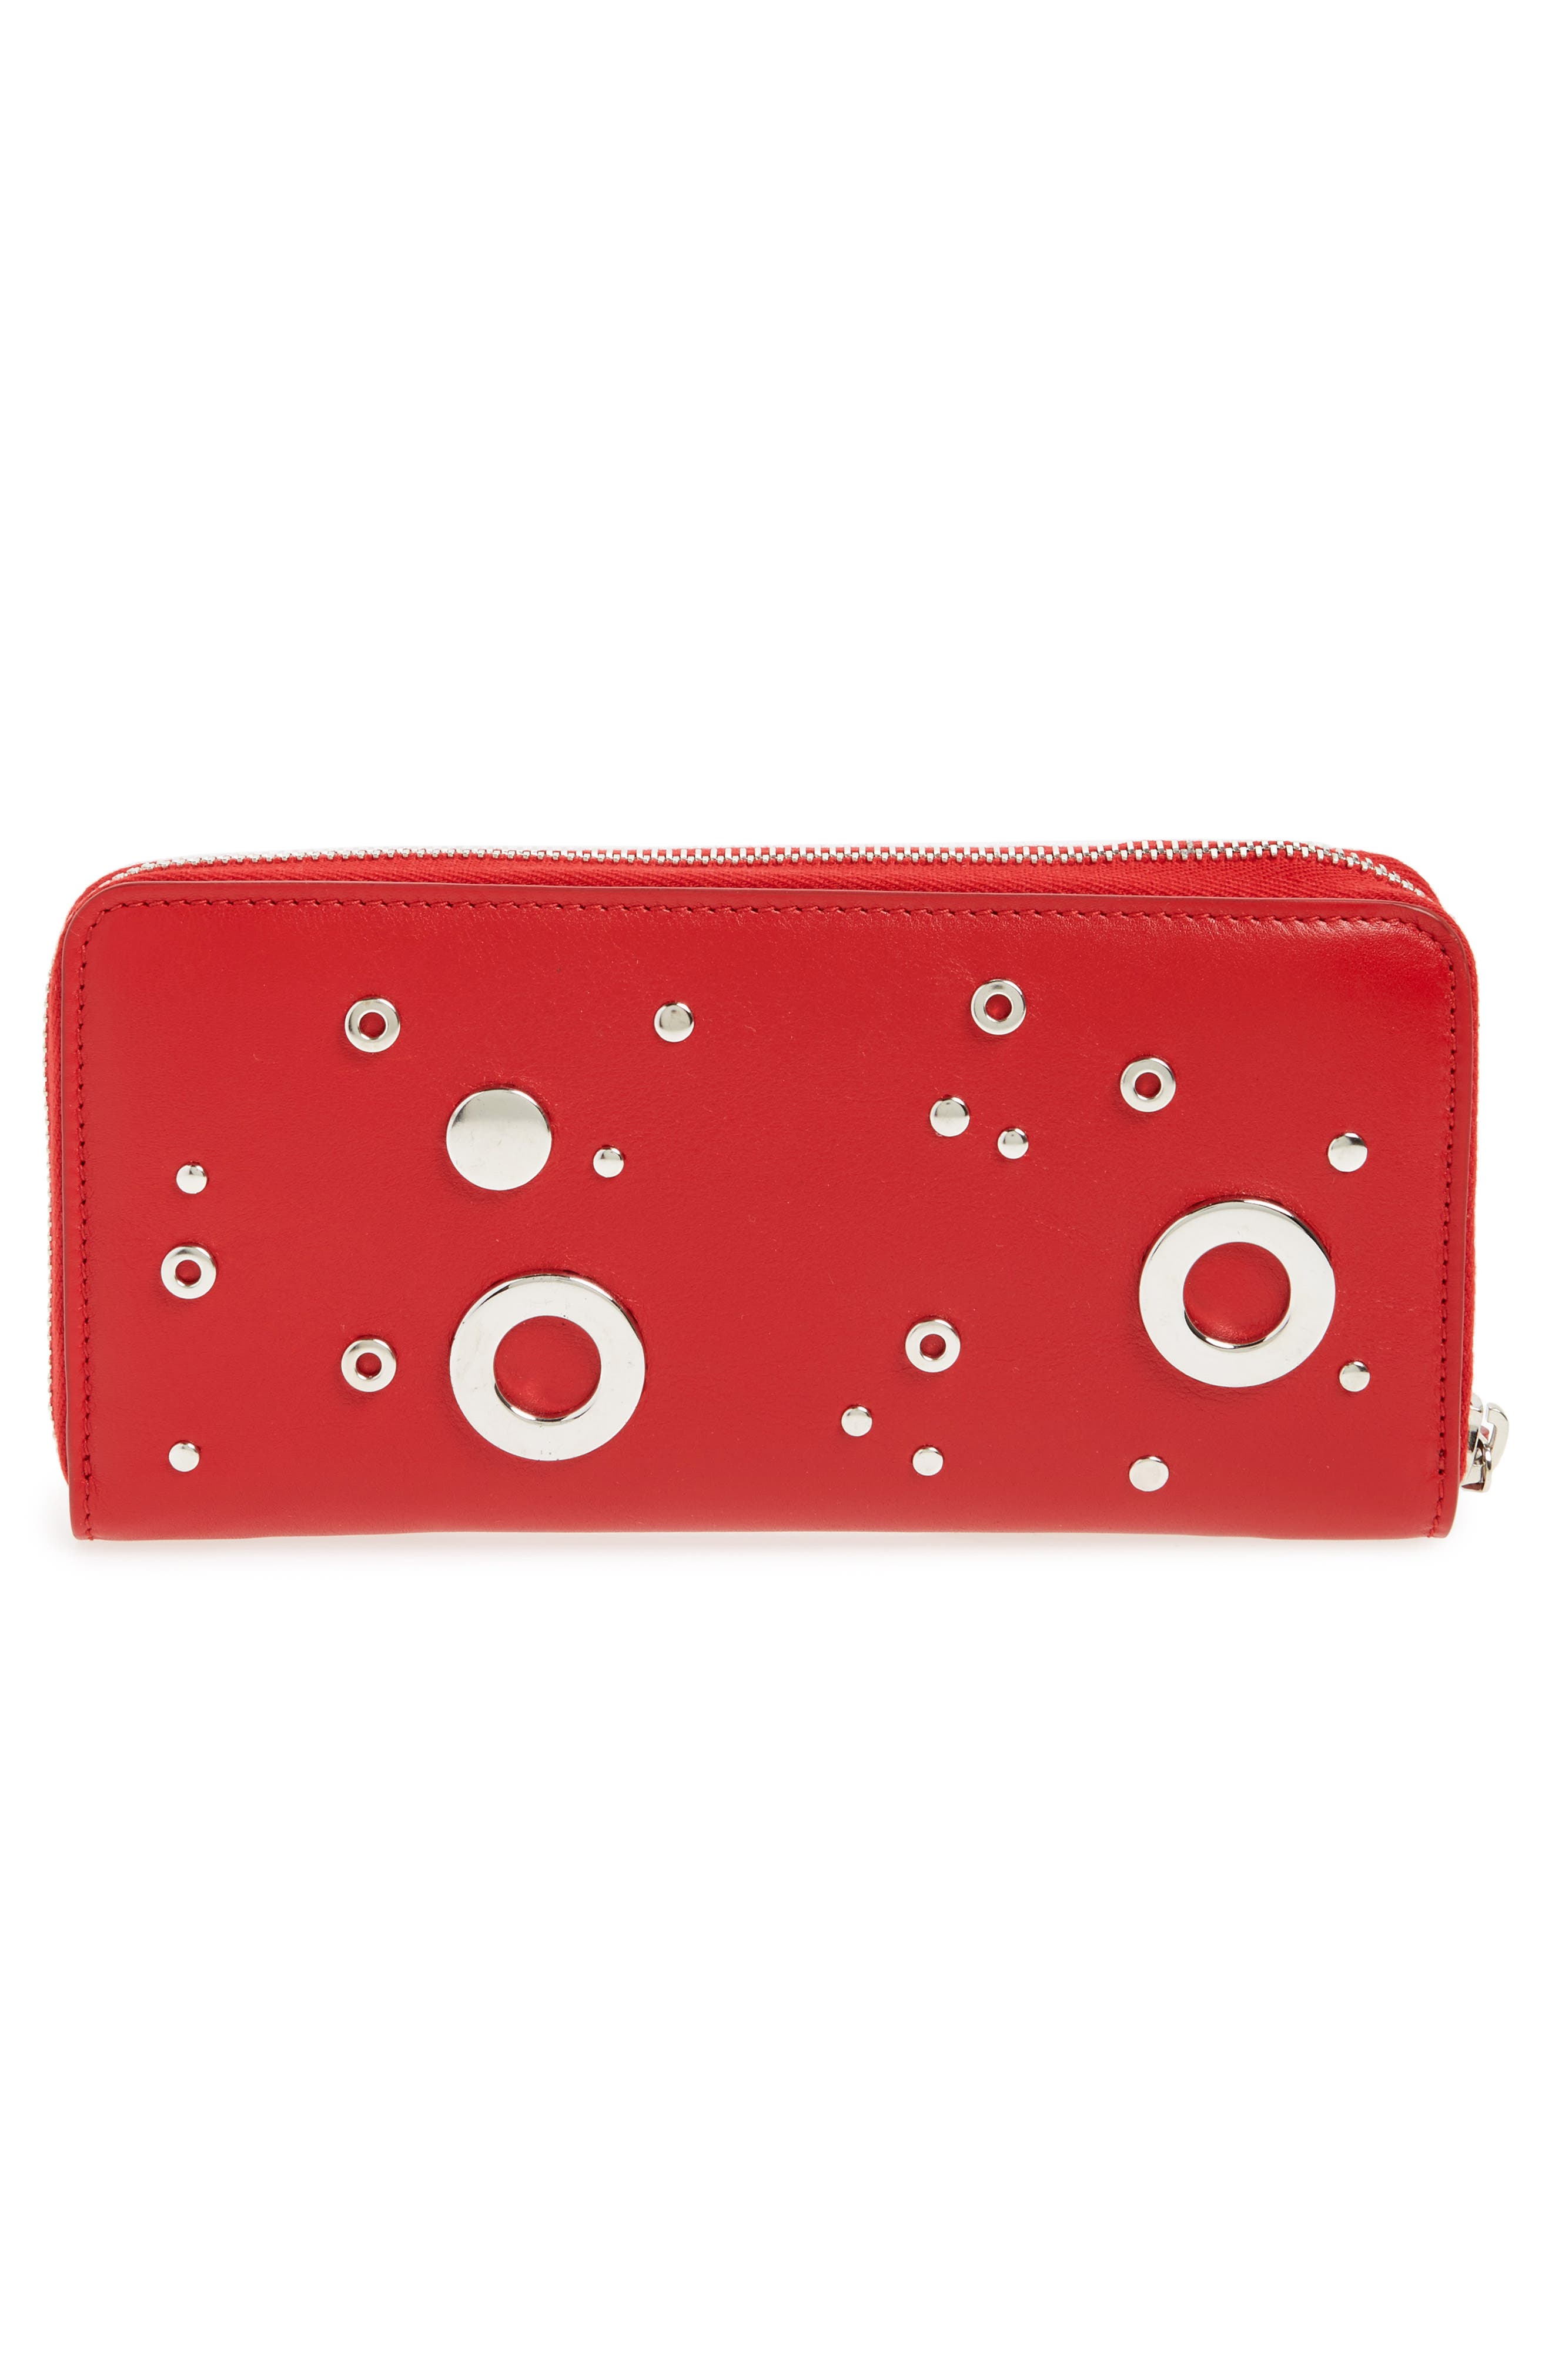 Studded Zip Around Continental Wallet,                             Alternate thumbnail 4, color,                             New Scarlet